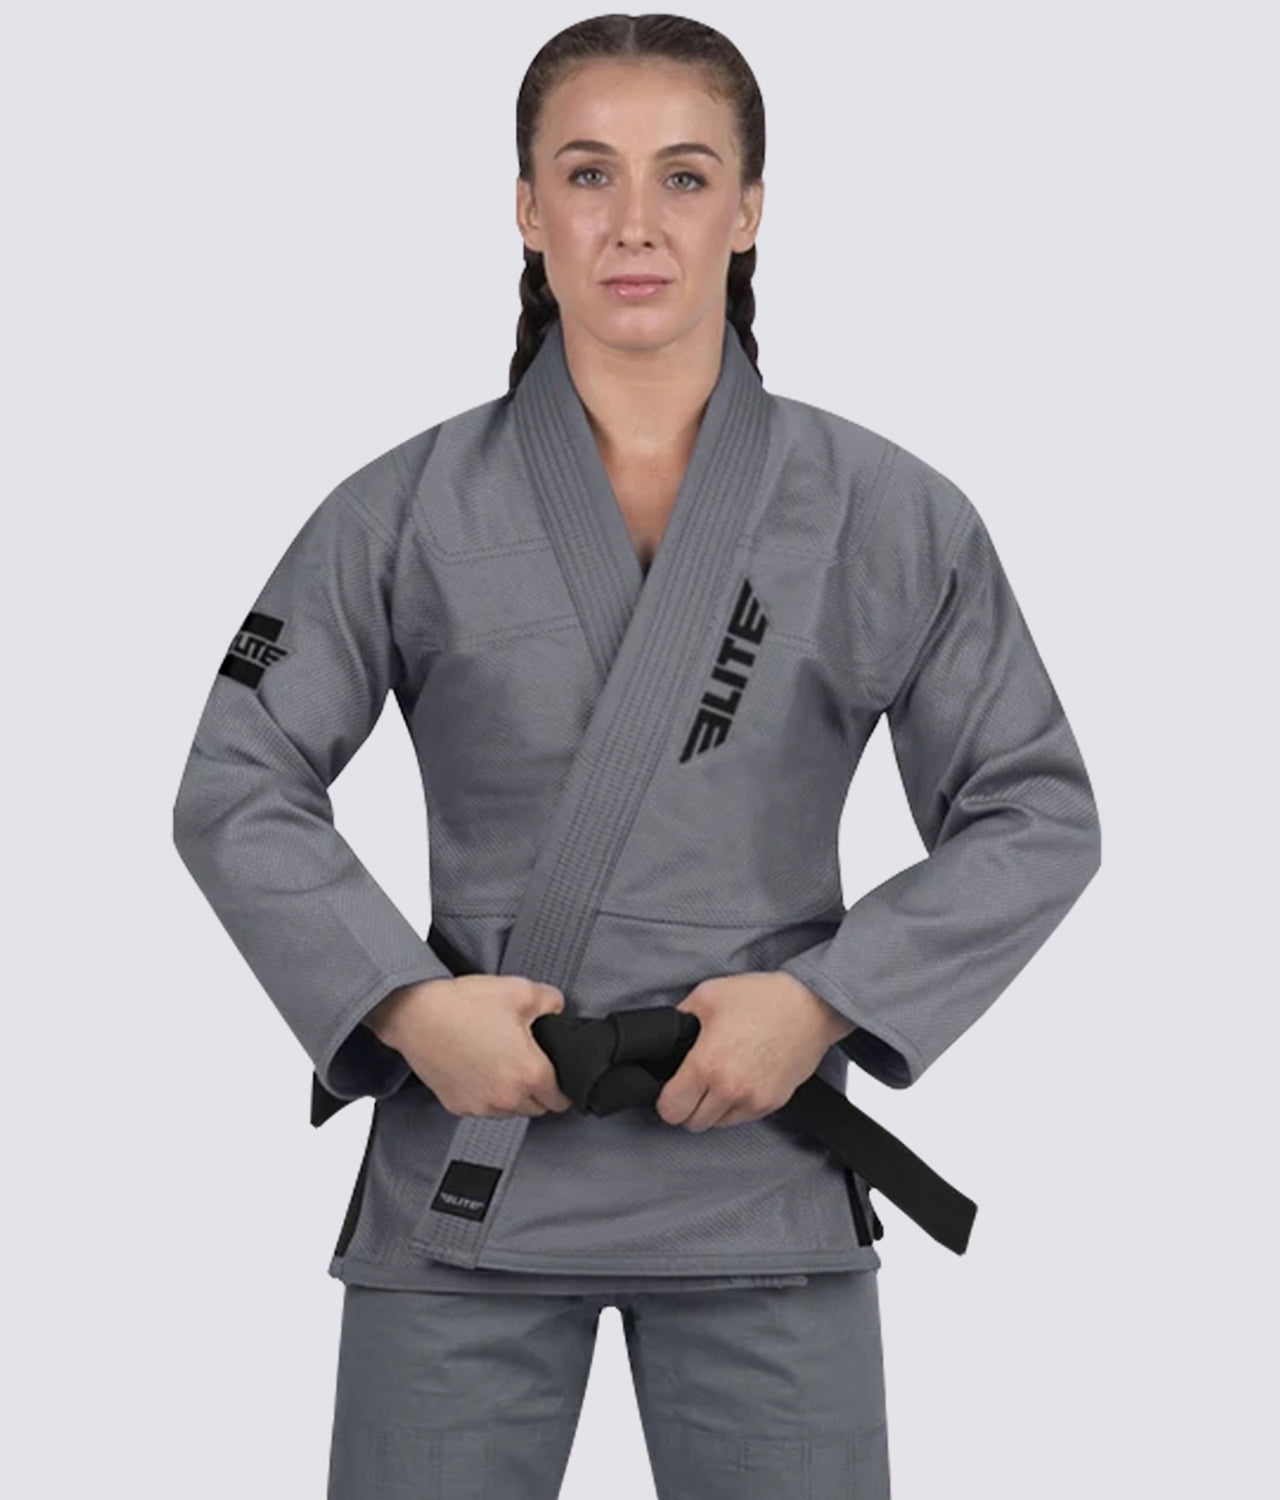 Elite Sports Lightweight Preshrunk Antibacterial Gray Women Brazilian Jiu Jitsu BJJ Gi With Free White Belt